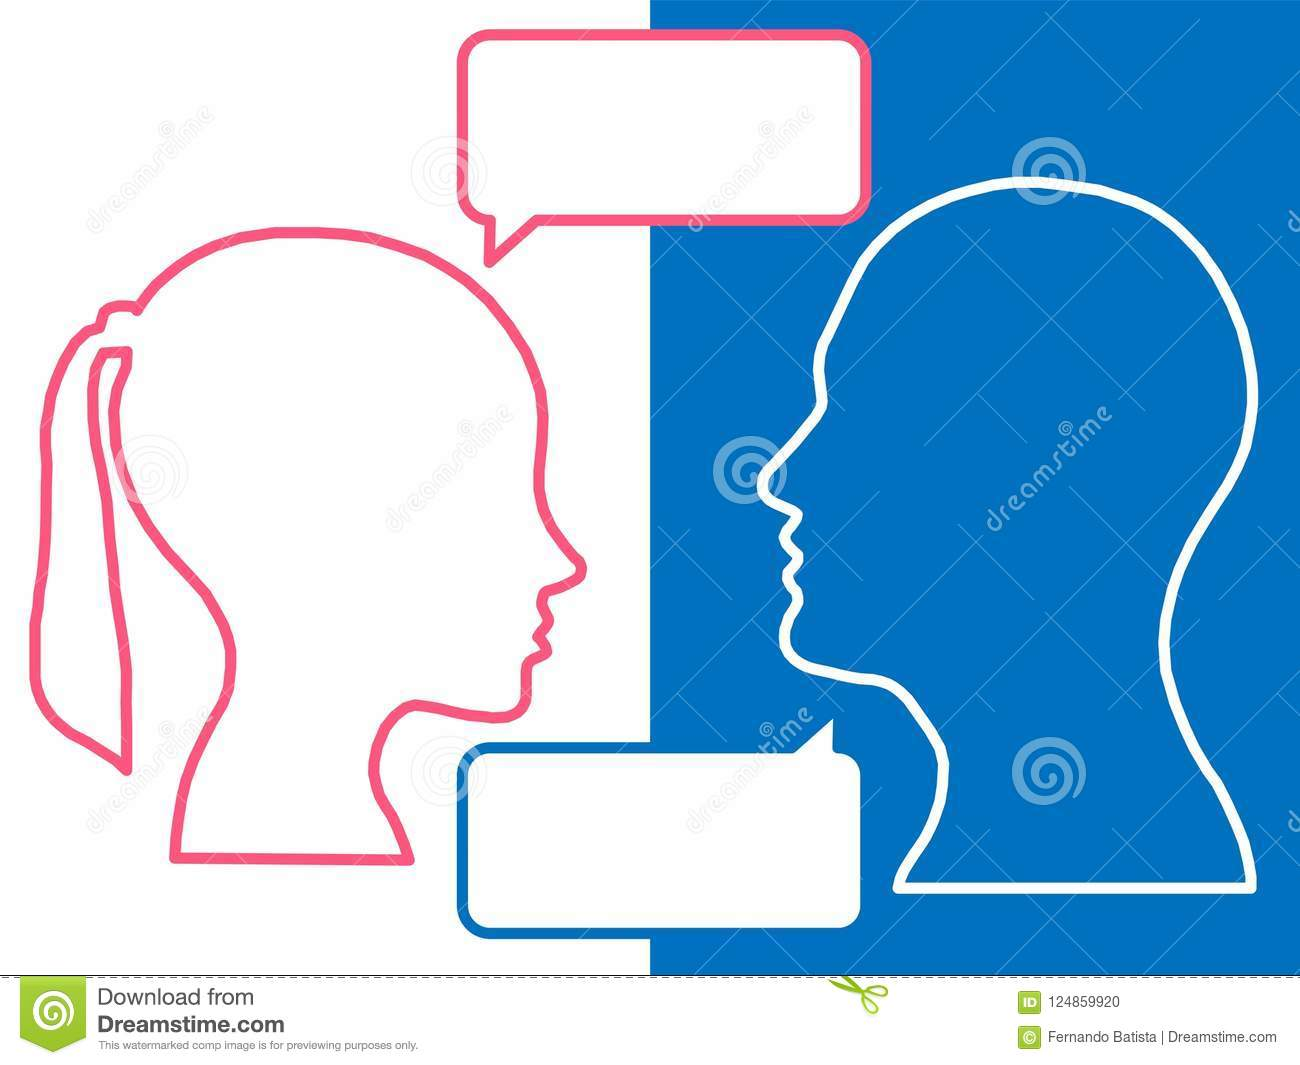 Heads of two people, woman and man, brainstorming concept for question,